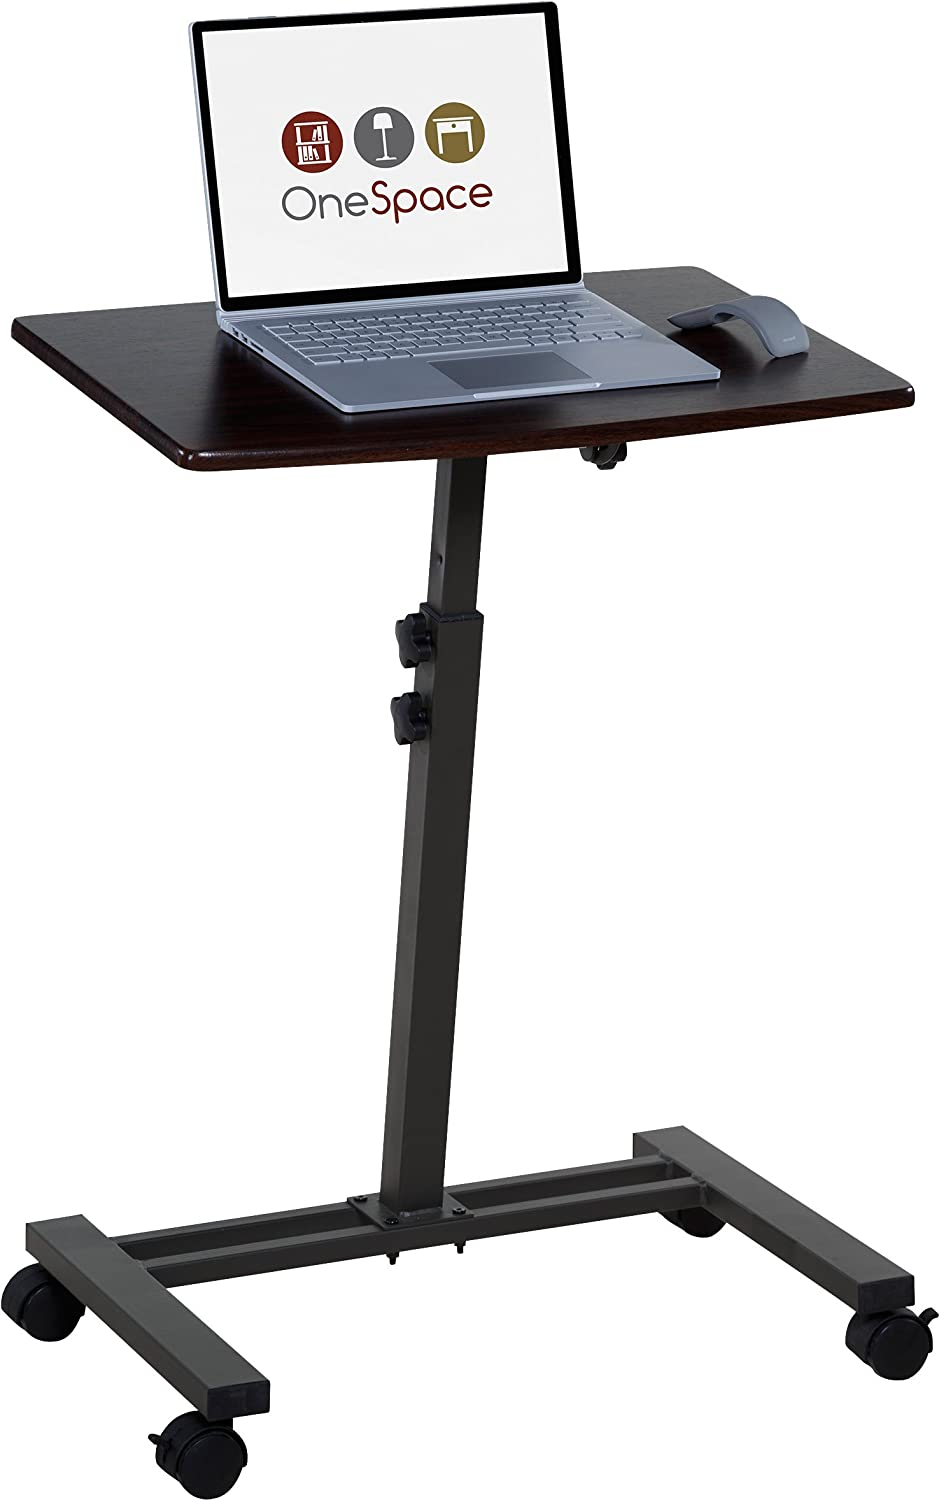 OneSpace Angle and Height Adjustable Mobile Laptop Computer Desk, Single Surface, Dark Walnut